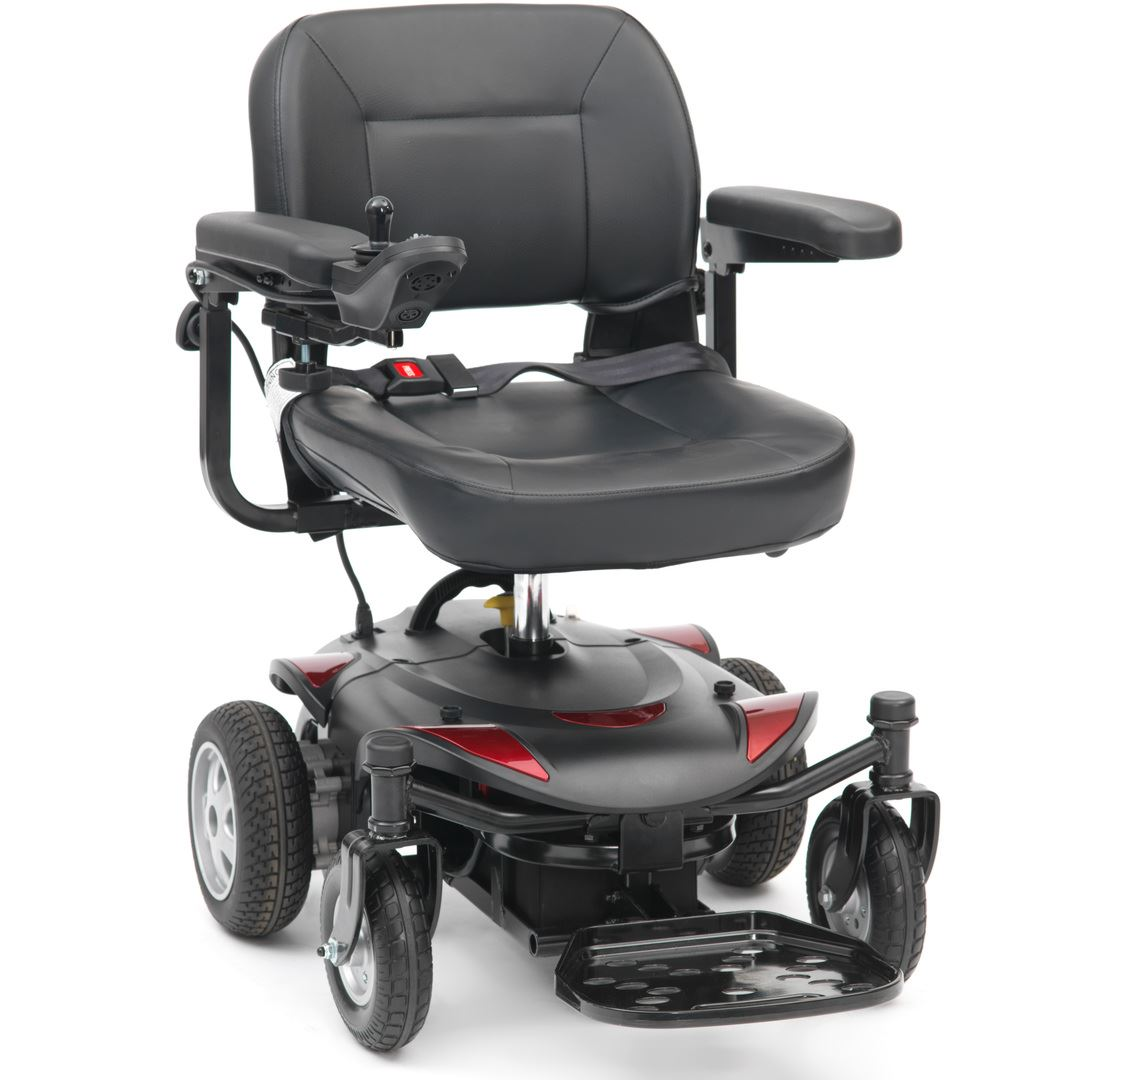 Picture for category Titan Compact Powerchair